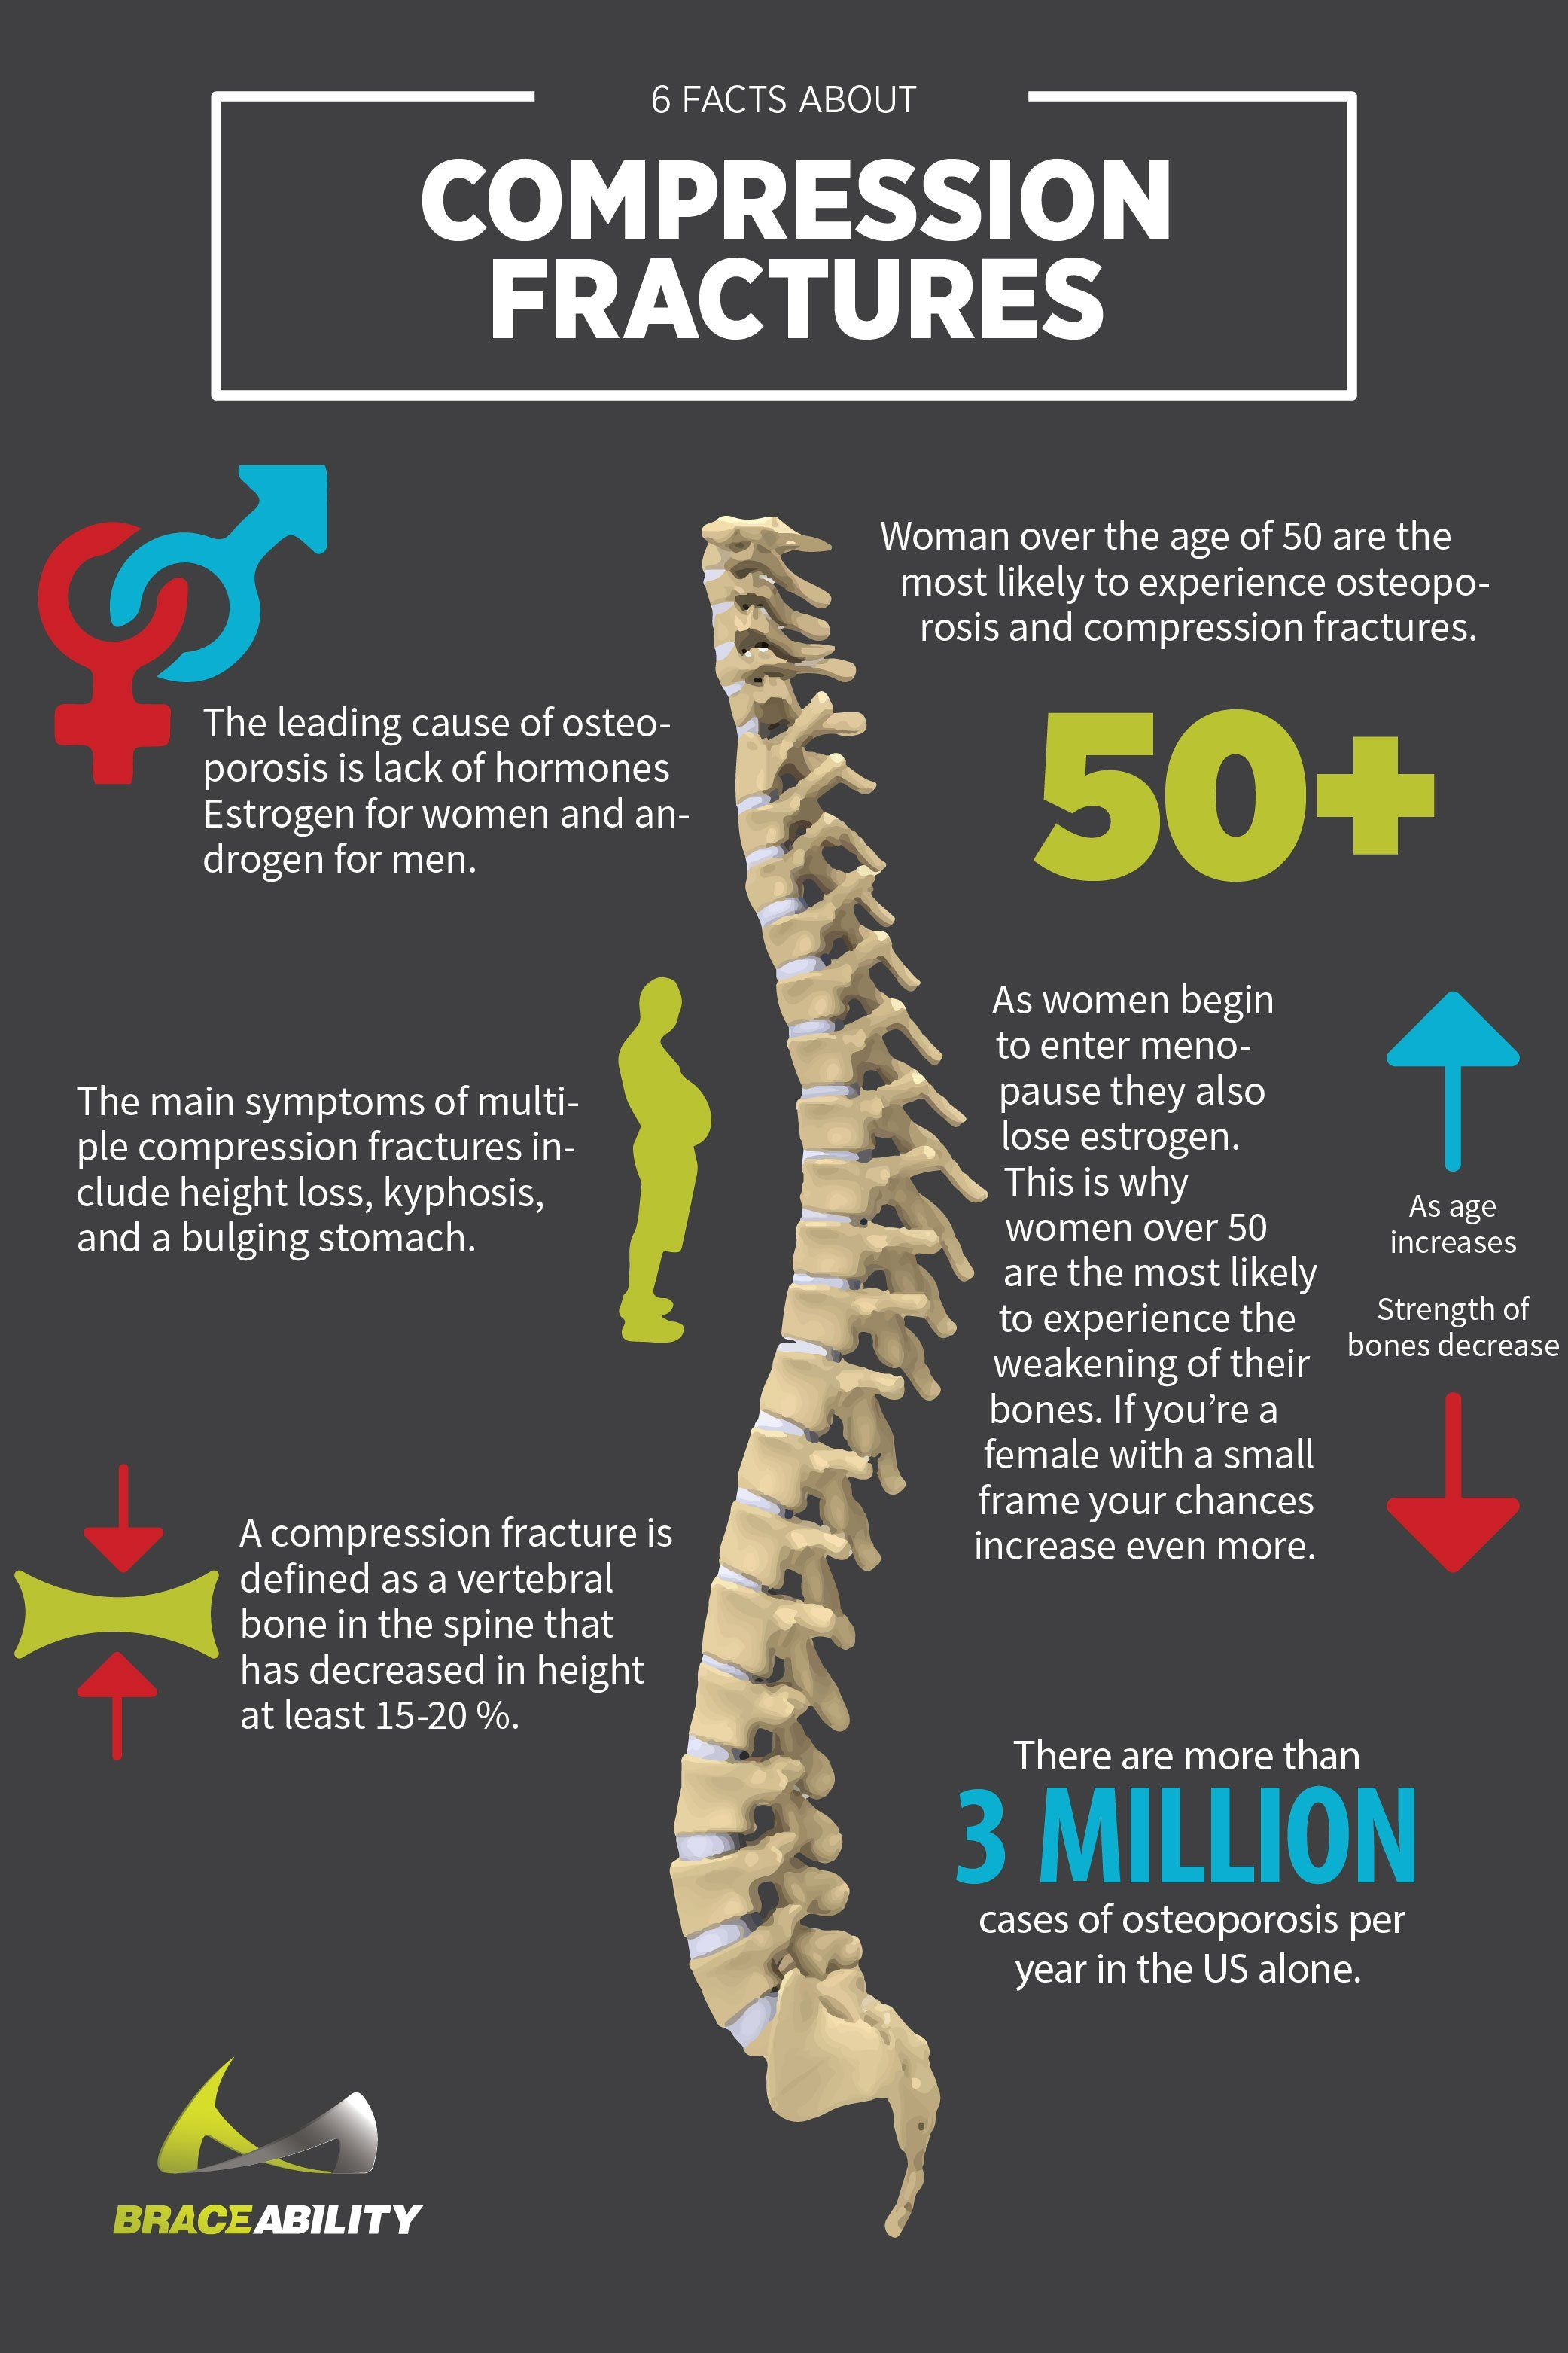 17++ Which type of bone fracture is associated with osteoporosis ideas in 2021